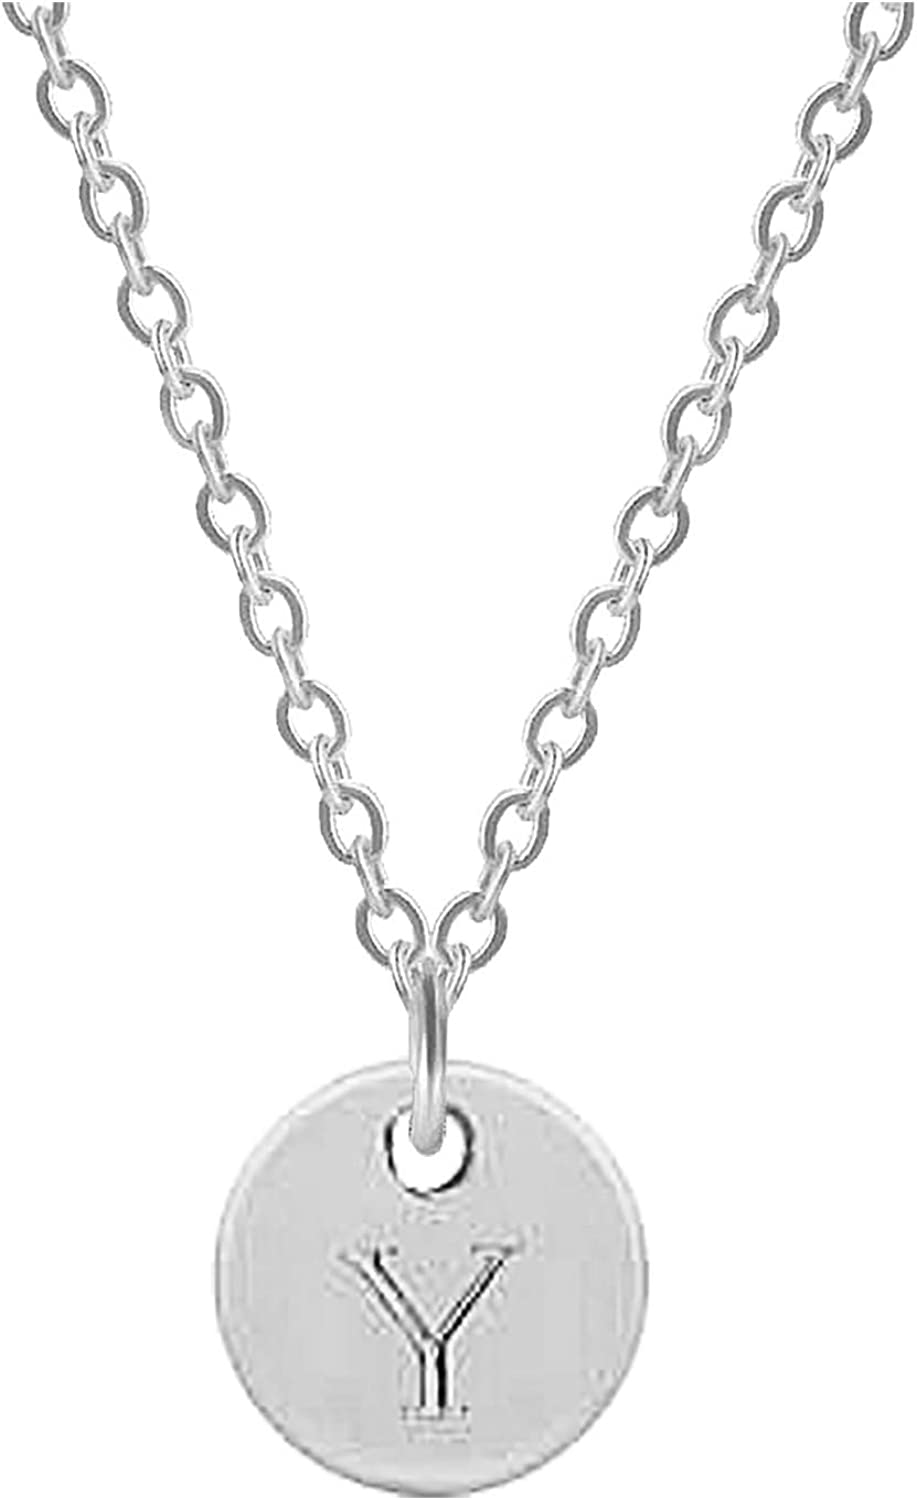 Taswuw Circle Coin Initial Letter Alphabet A to Z Necklace, Stainless Steel Adjustable Capital Name Pendant with Chain, Engraved Jewelry for Women Girls